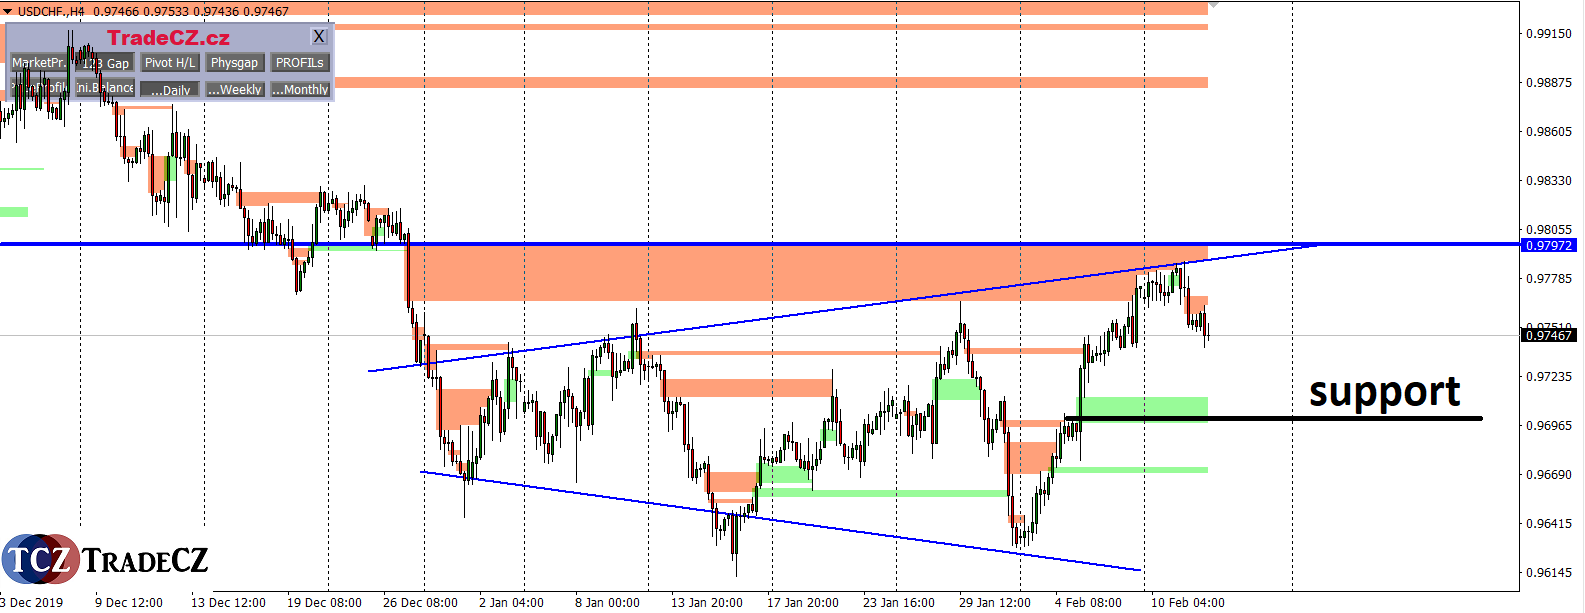 USDCHF single price action